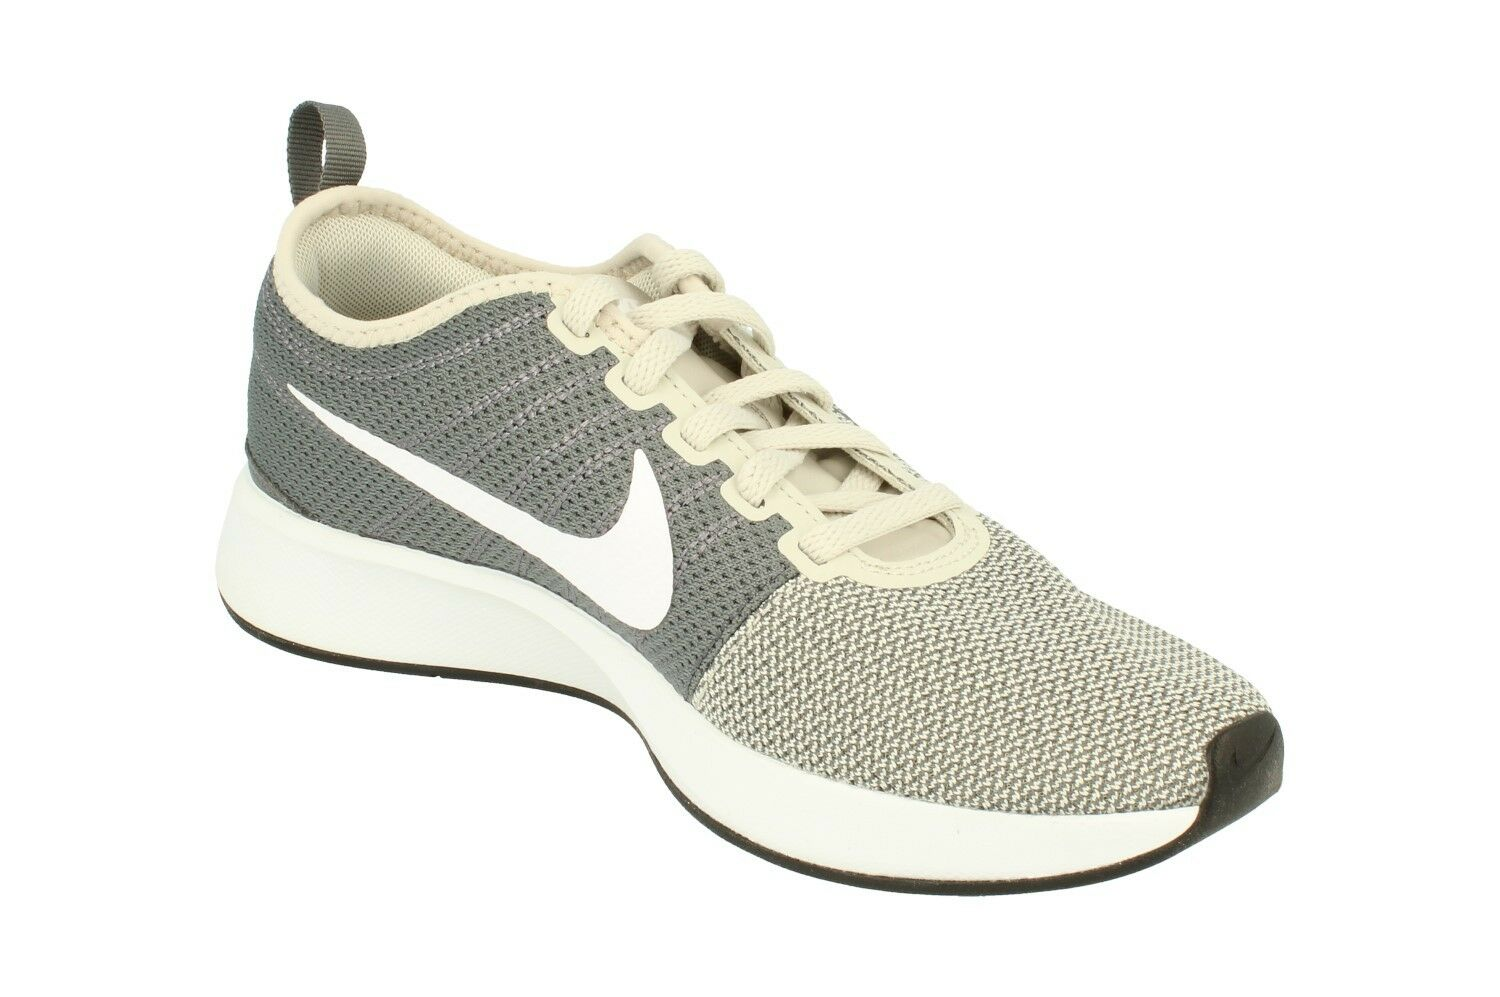 Nike Wo Hommes Dualtone Racer Running Trainers 917682 Sneakers Chaussures 004